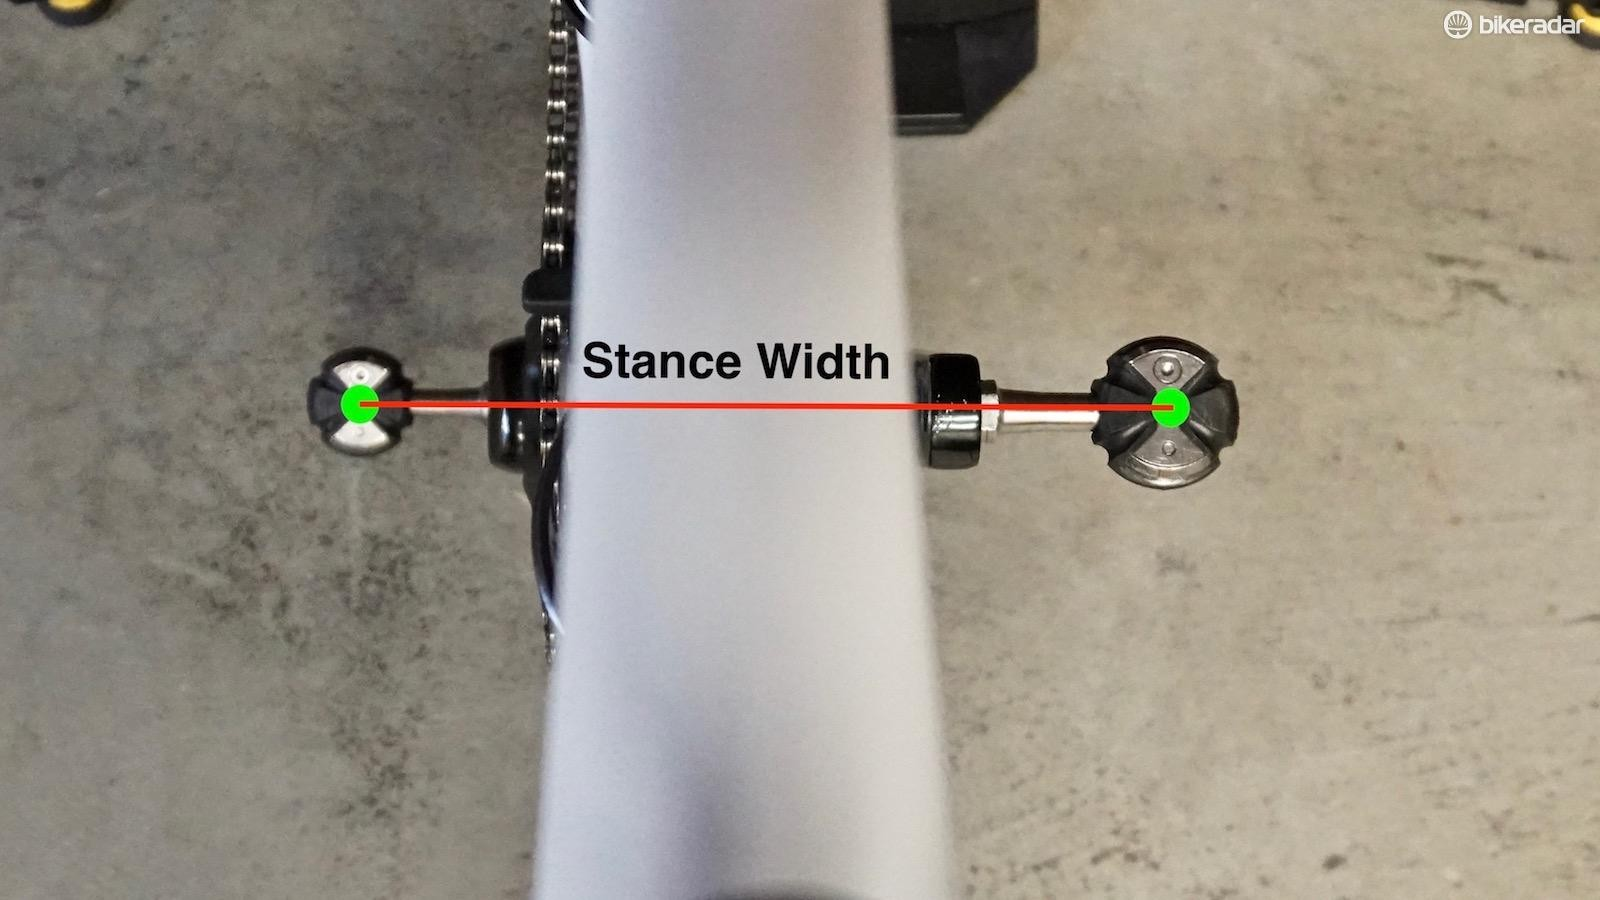 If we could simply measure left to right, stance width might look something like this